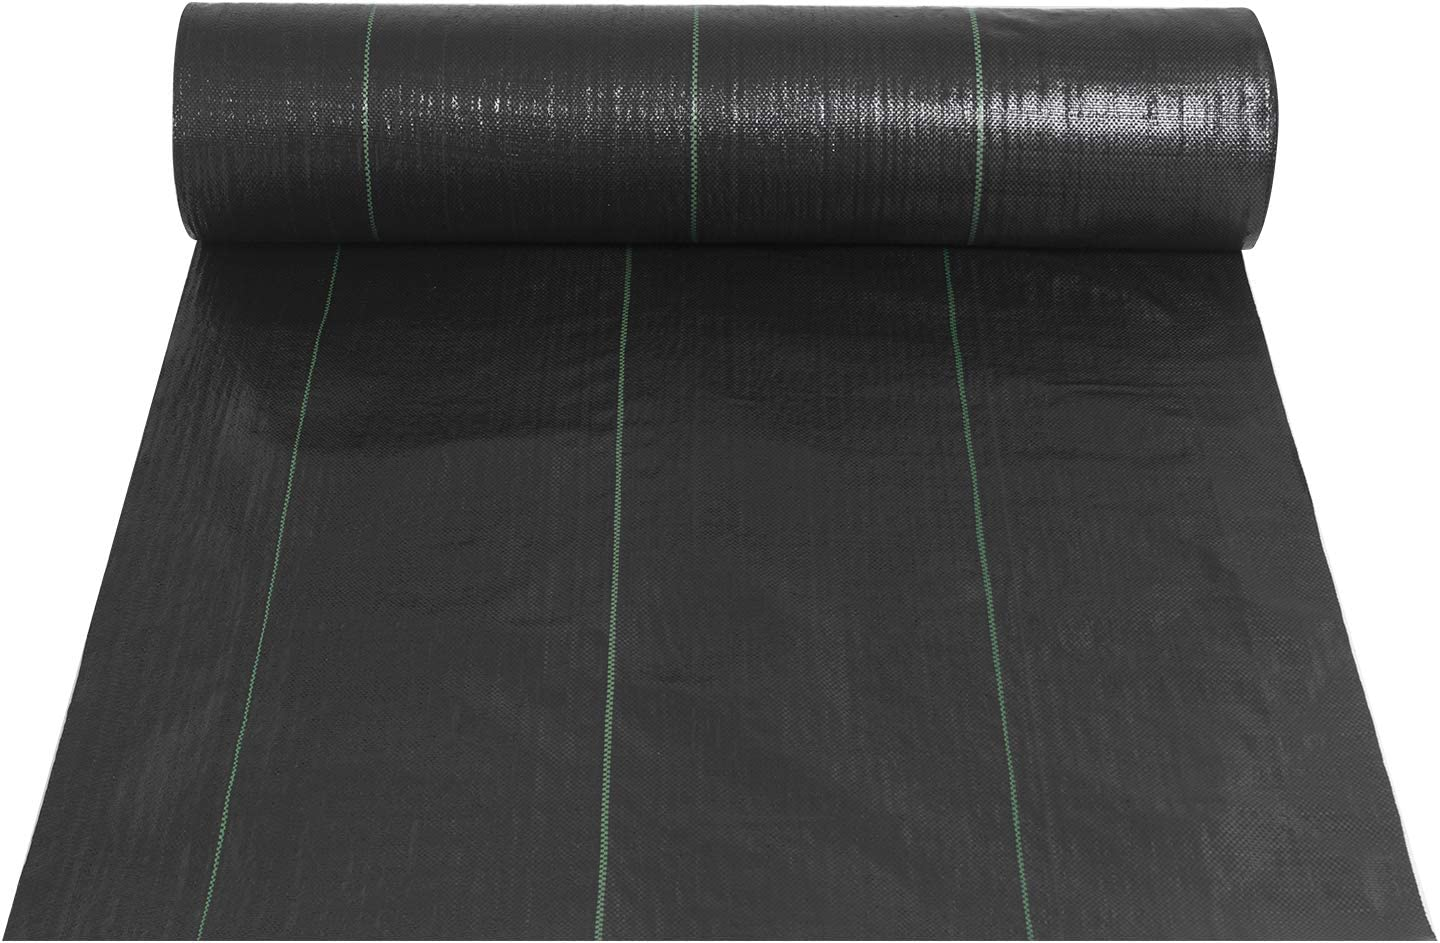 Landscape Fabric 6.5ft x 300ft - Geotextile Fabric Heavy Duty 3oz - Ground Cover Non Woven for Commercial Greenhouse, Yard, Garden Barrier Cloth Blocker Mat (6.5×300FT)